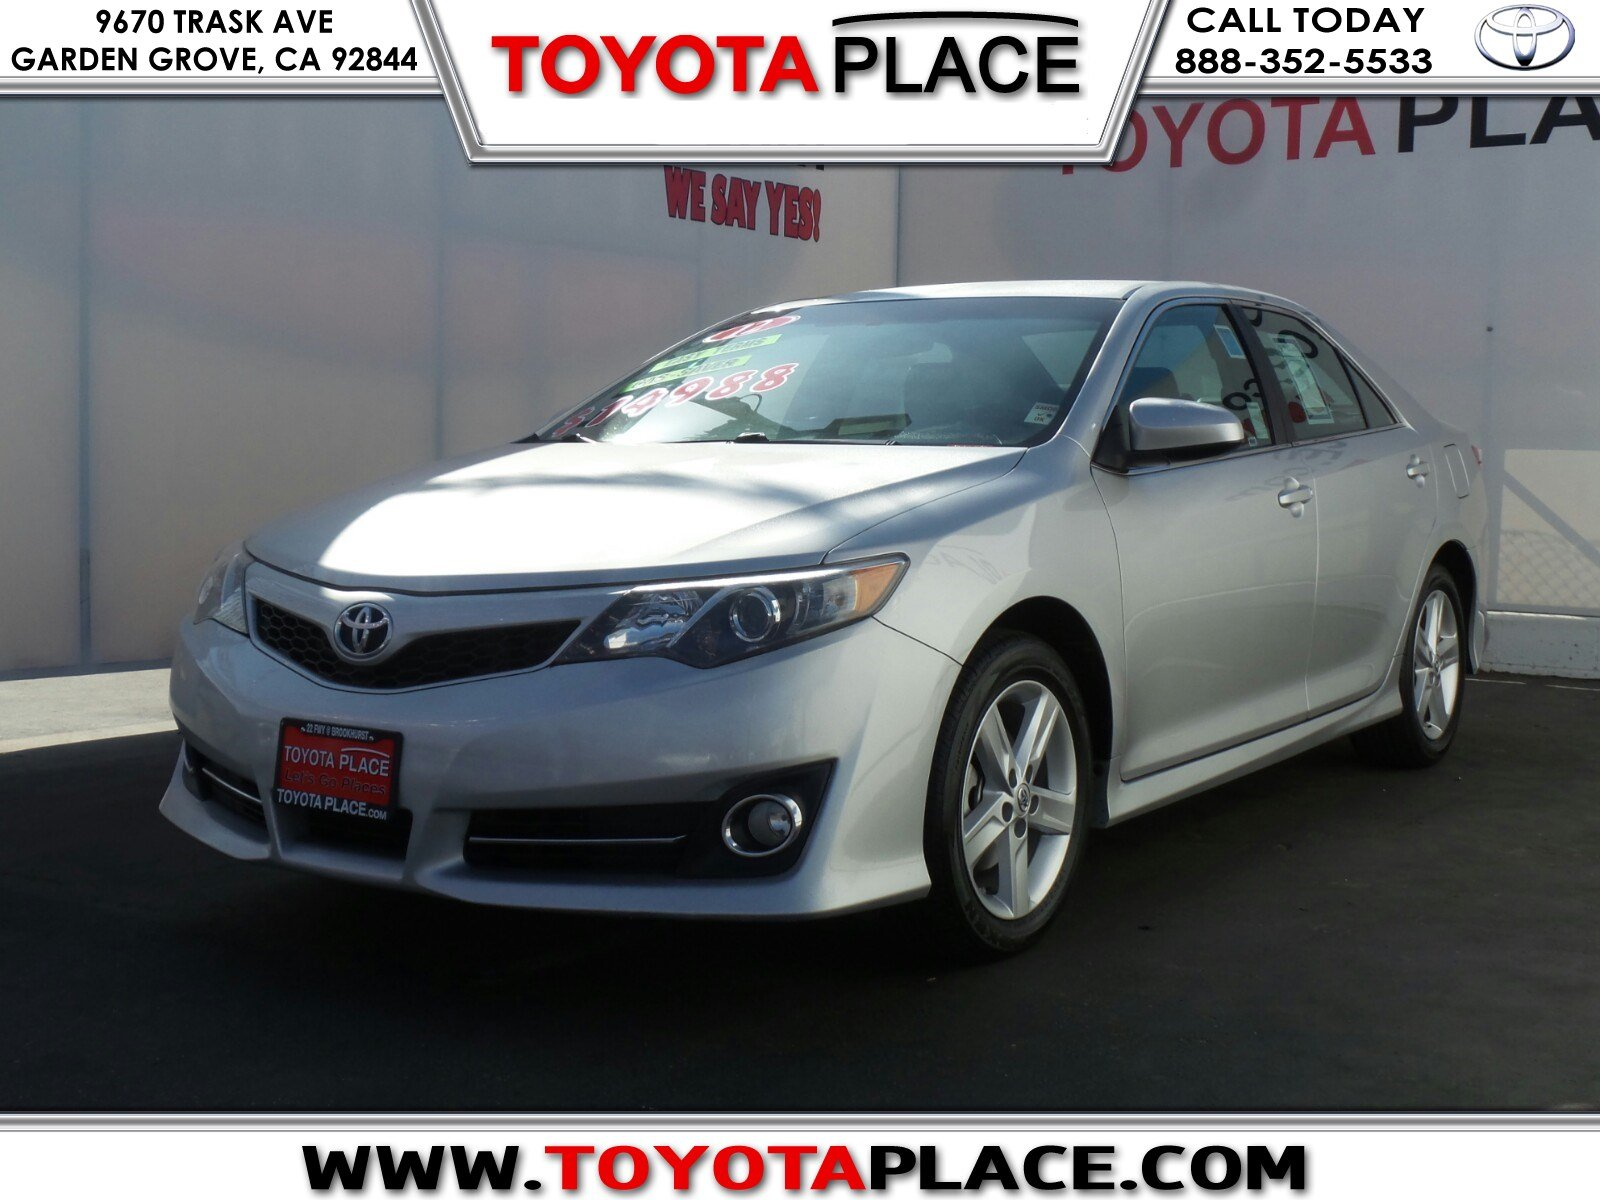 pre owned 2012 toyota camry se 4dr car in garden grove p147471 toyota place. Black Bedroom Furniture Sets. Home Design Ideas